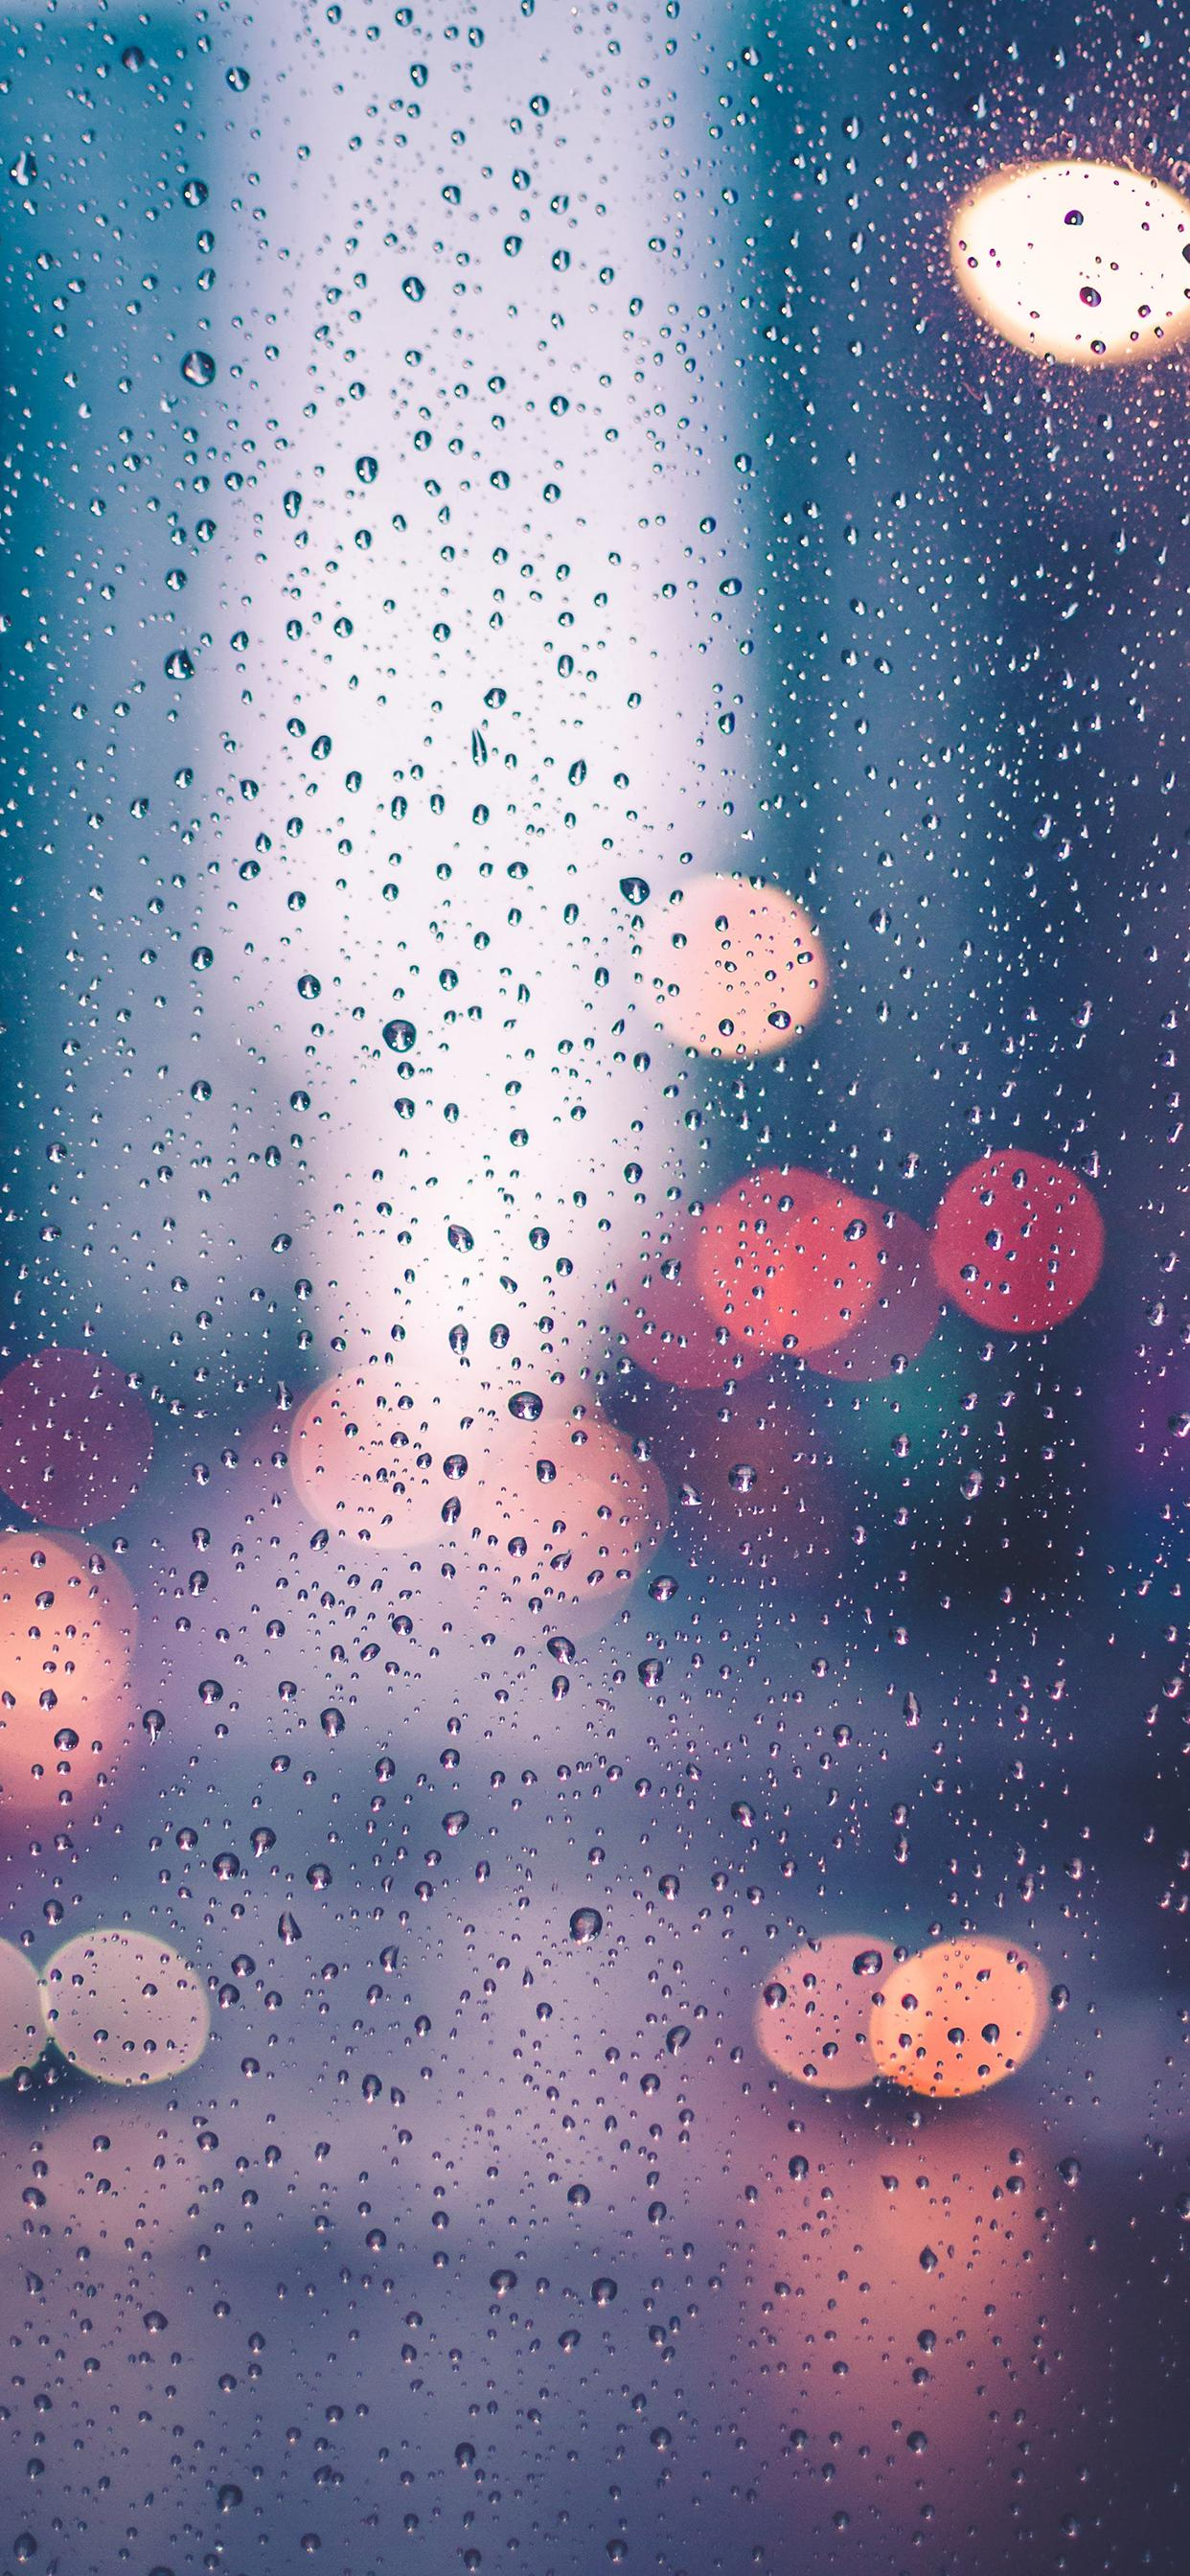 Rainy Window Wallpapers on